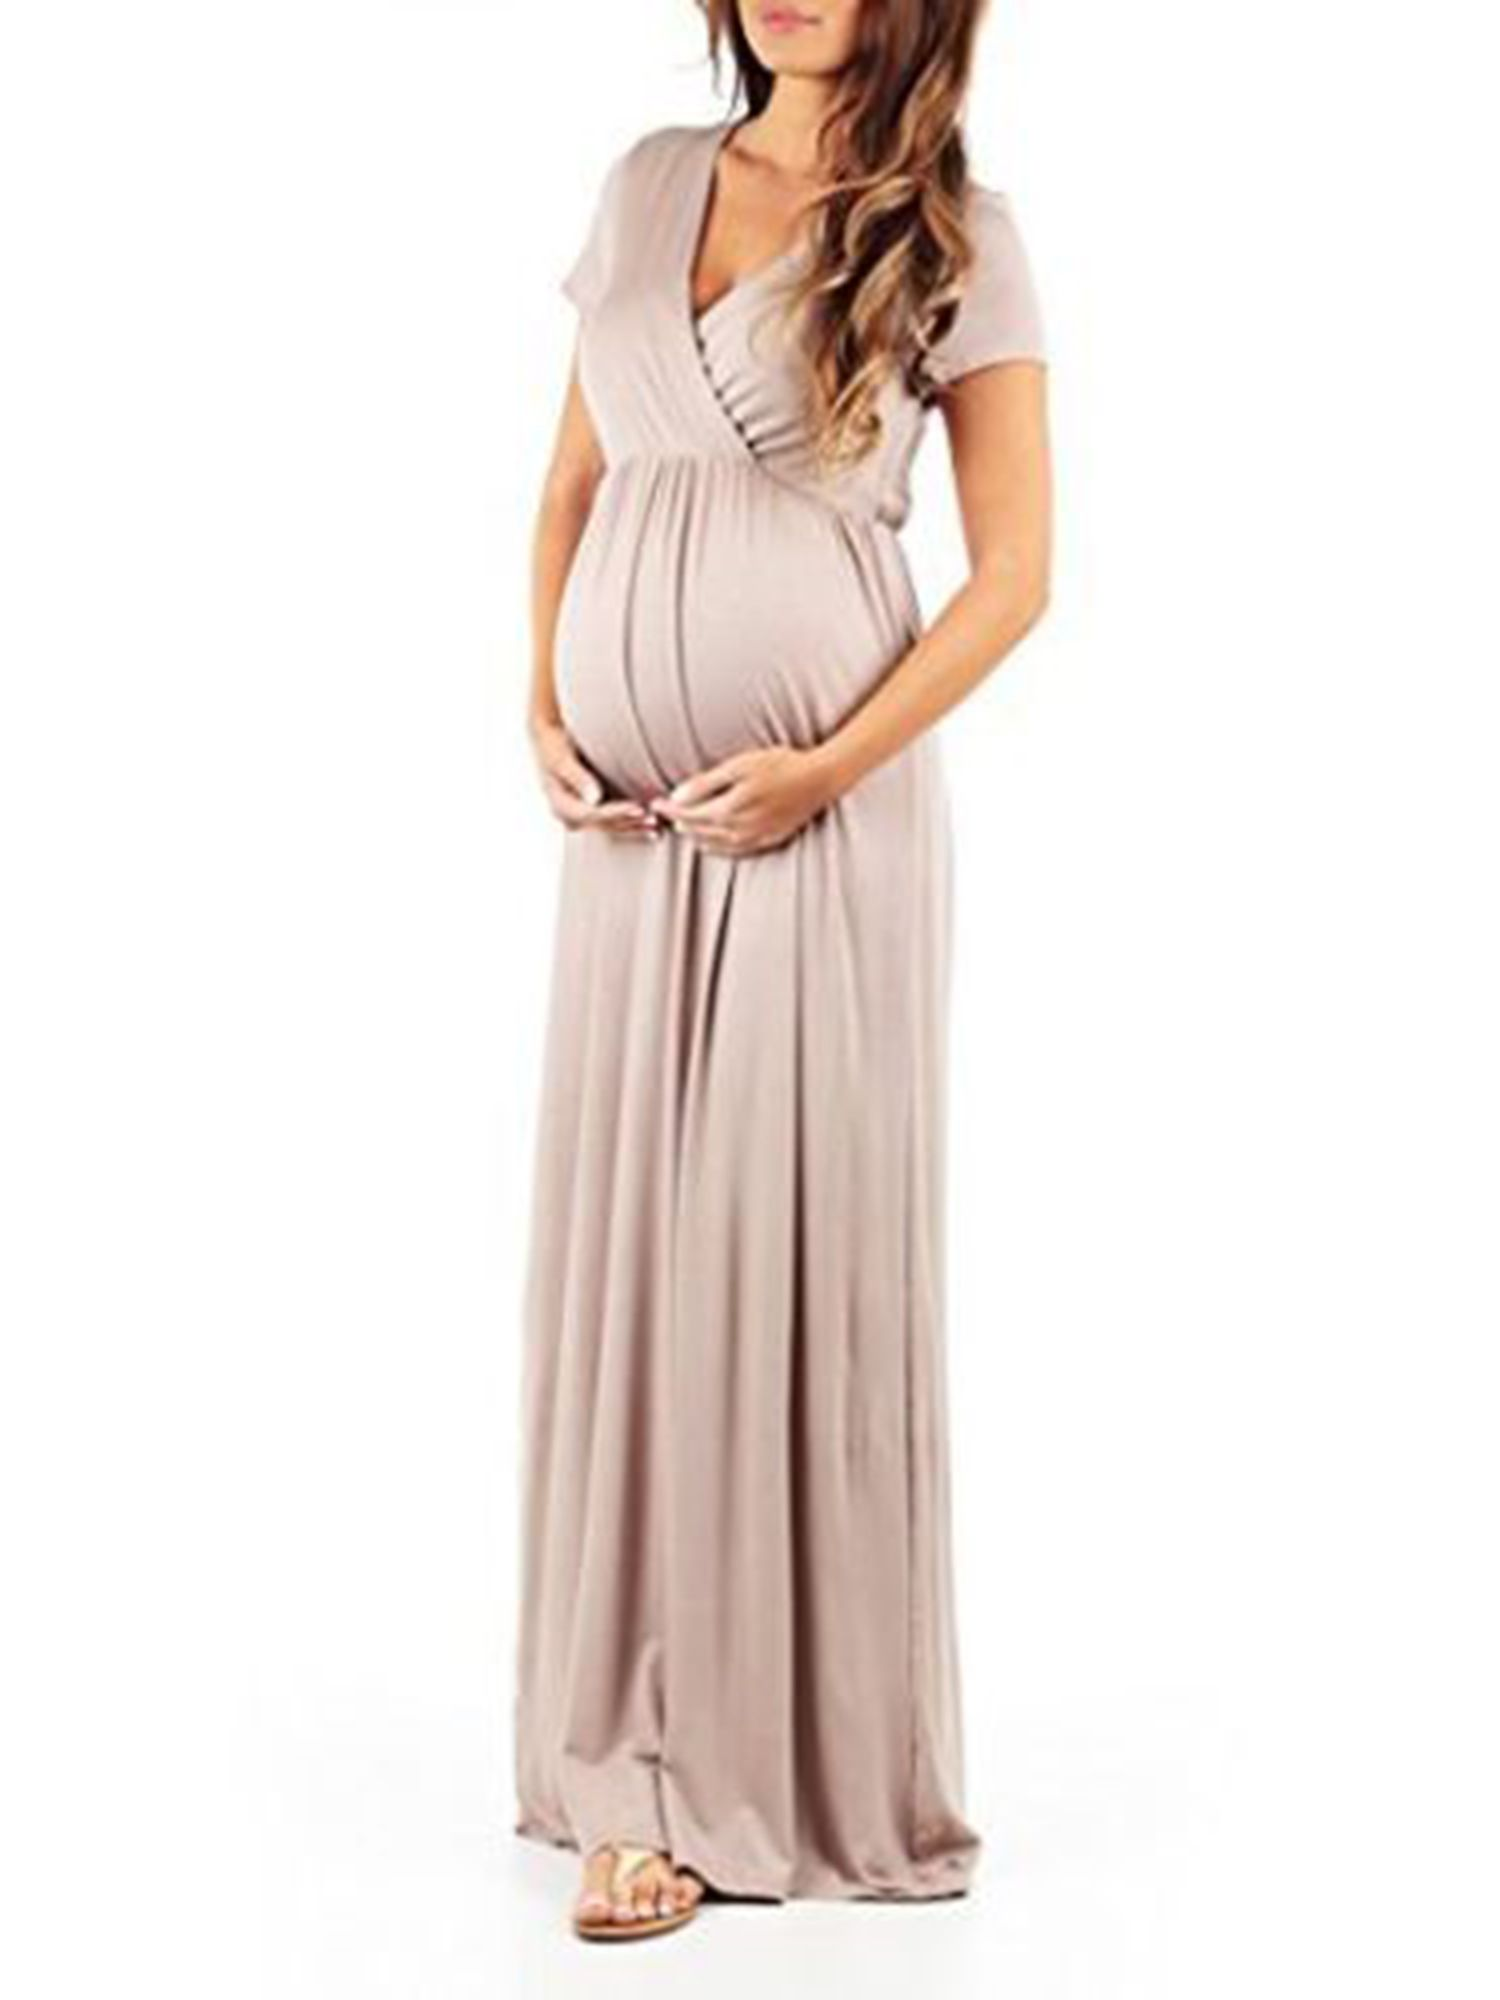 b5814993685afb V neck Maternity Dress for Women Photography Prop Short Sleeve Long Maxi  Summer Casual Loose Full-Length Pregnant Dress#Prop, #Photography, #Sleeve